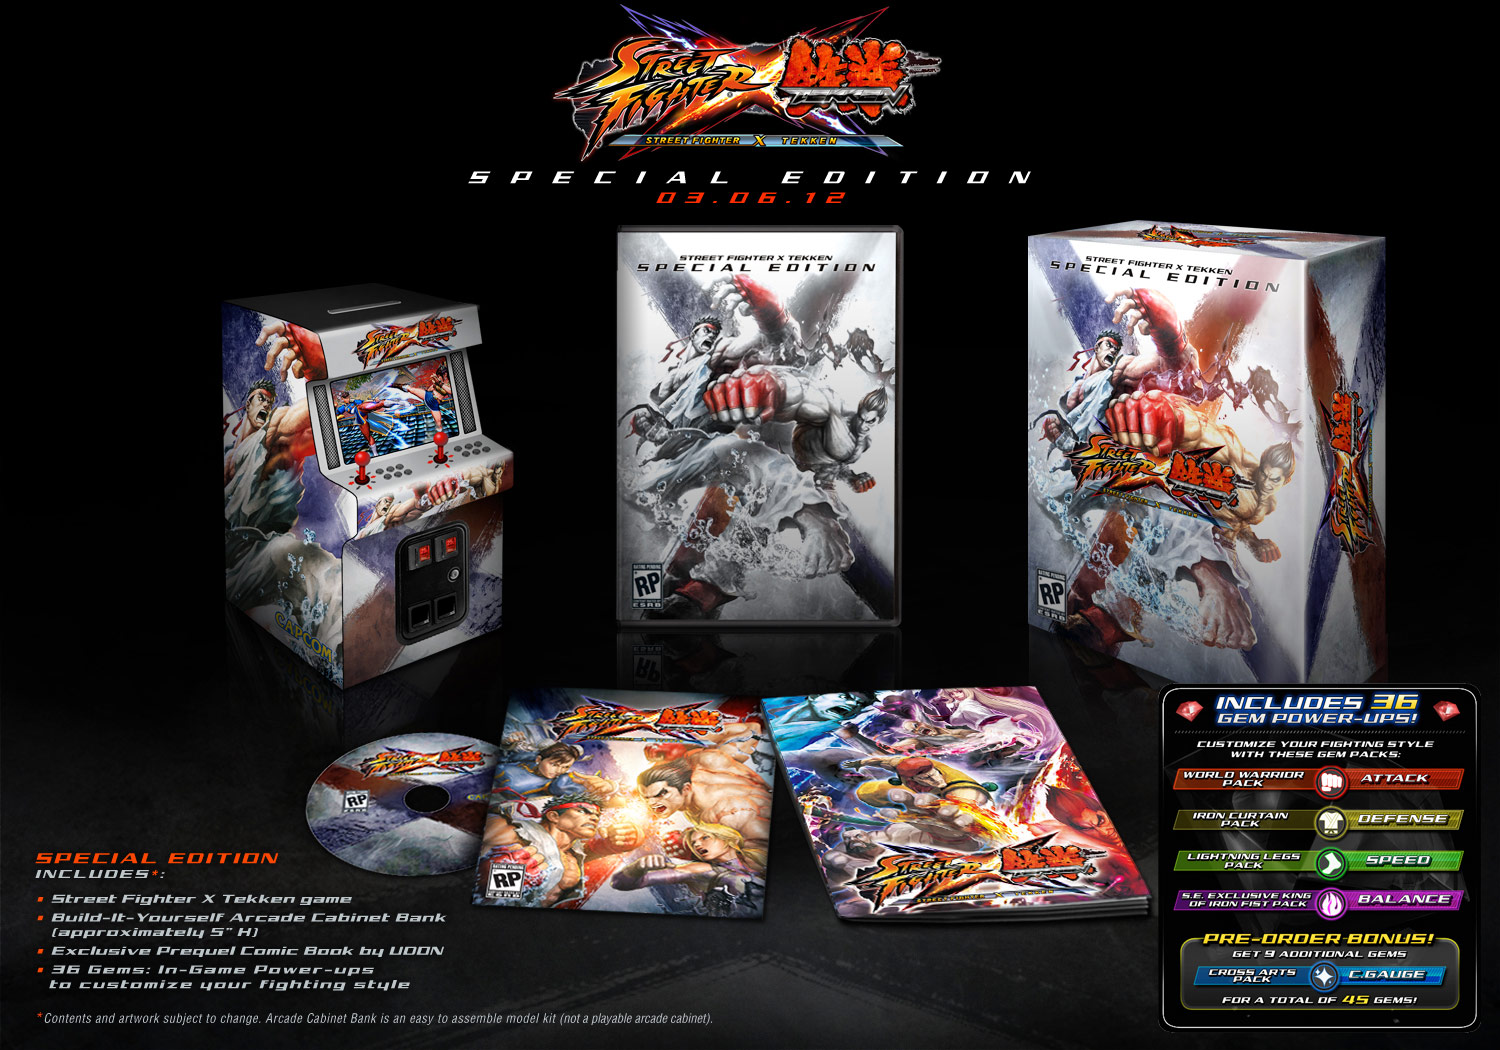 NYCC: SF X Tekken coming out on March 6th 2012 in both normal and collector's edition